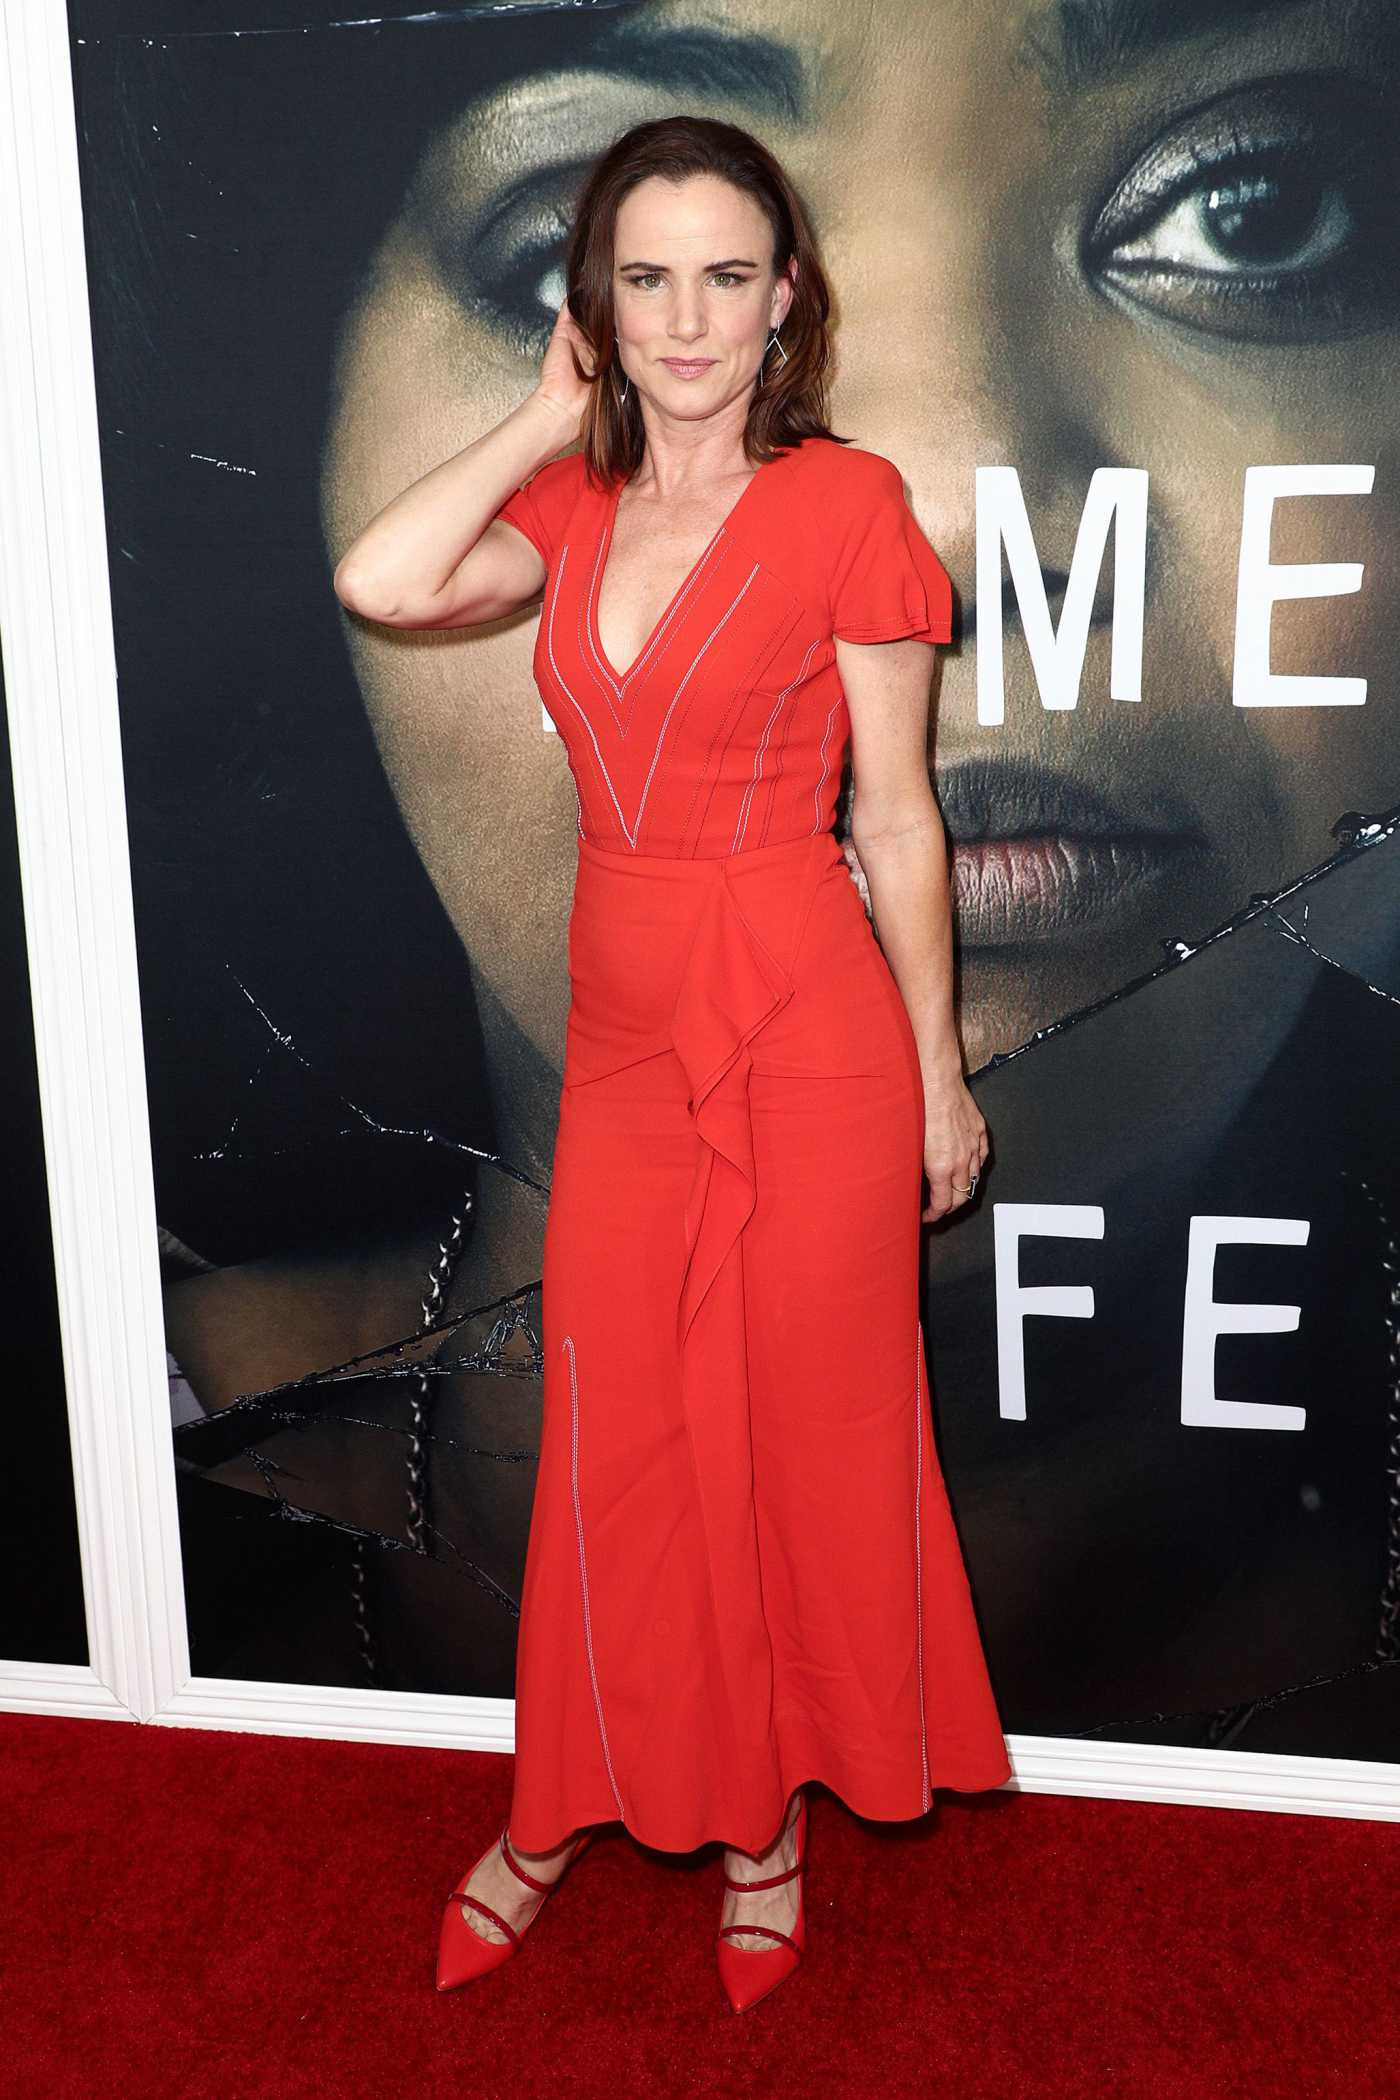 Juliette Lewis Attends the Ma Premiere in Los Angeles 05/16/2019